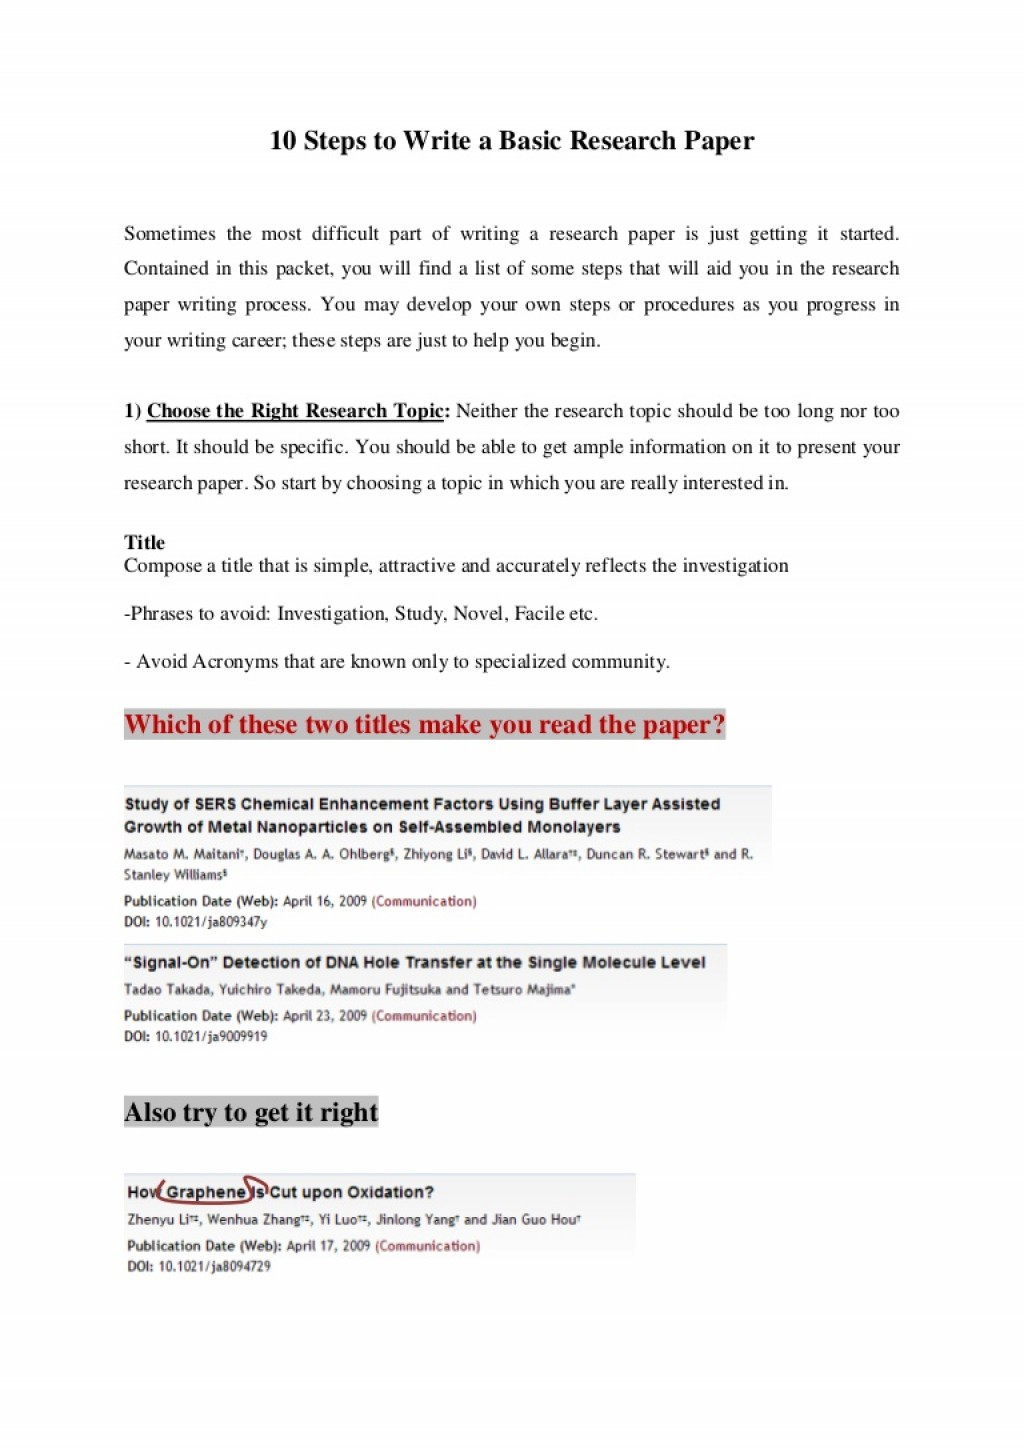 003 Steps To Writing Research Paper 10stepstowriteabasicresearchpaper Thumbnail Fearsome A In Apa Format Mla Style Large